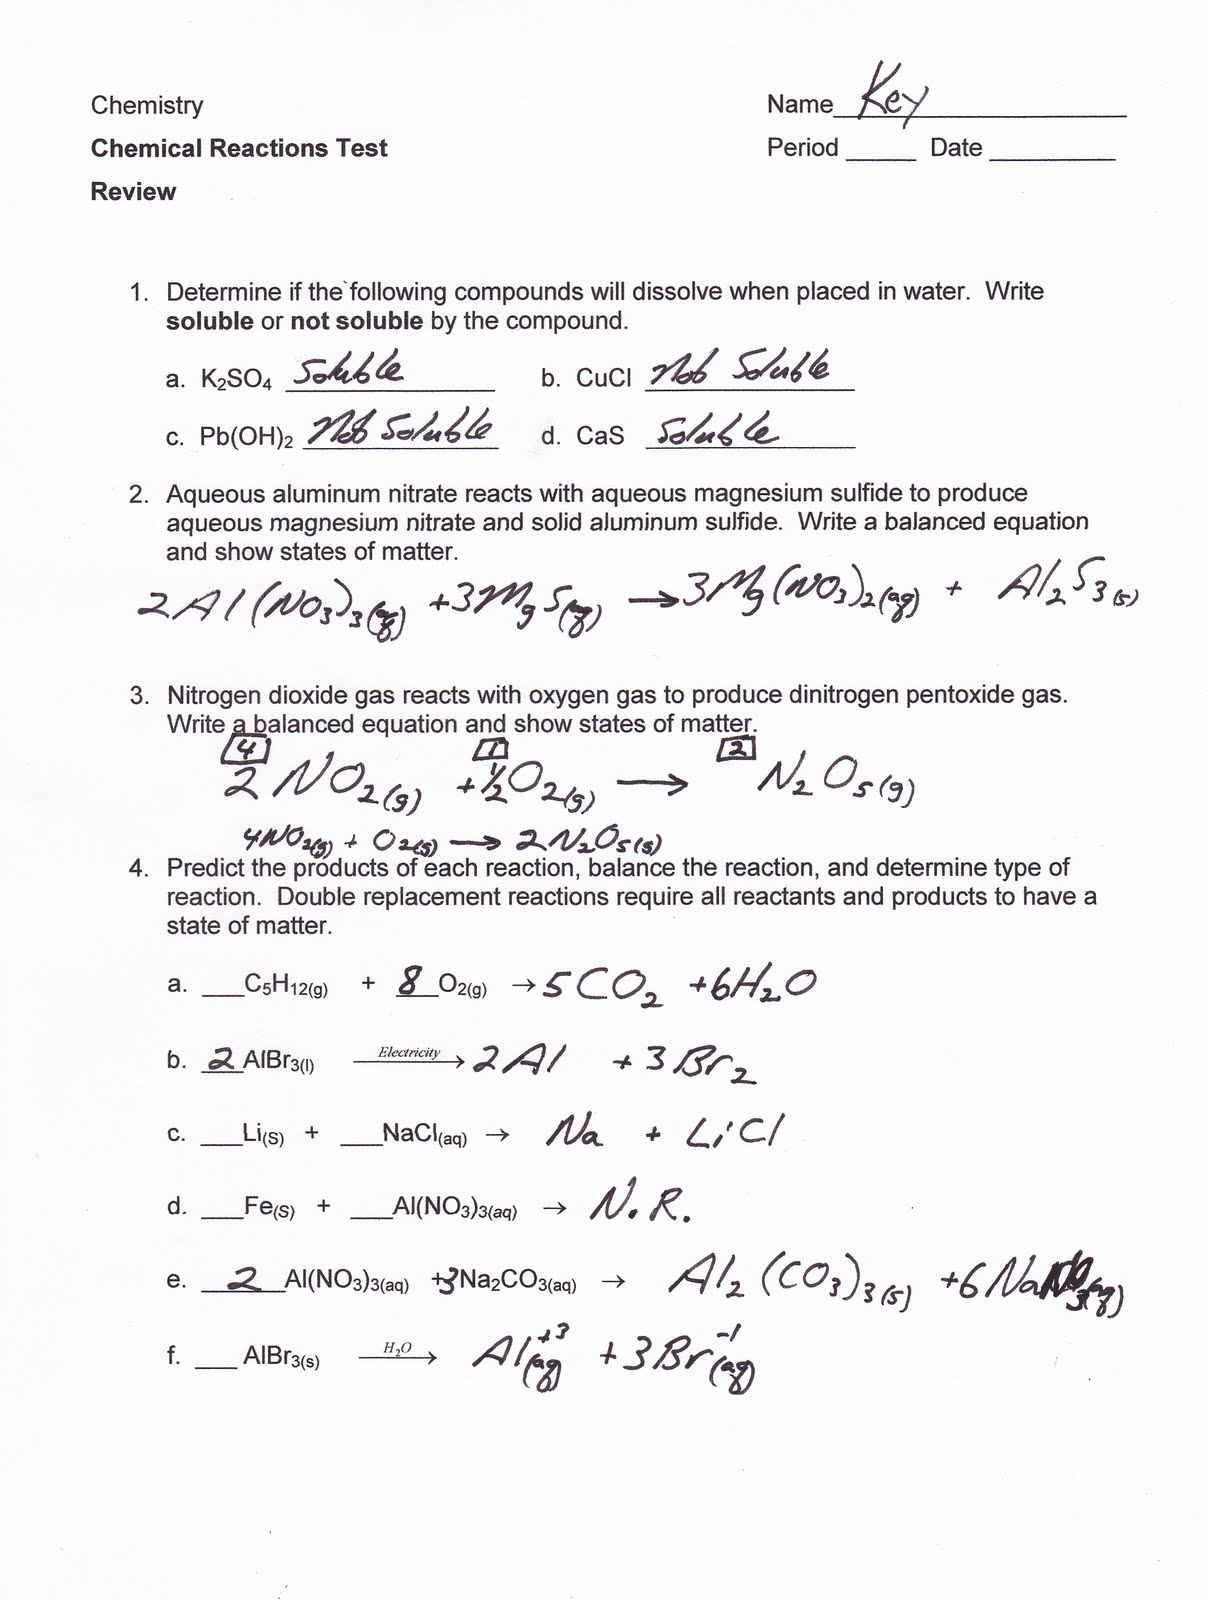 Printables Chemistry Review Worksheets mr brueckners chemistry class hhs 2011 12 for those of you experiencing a little difficulty on the balancing chemical reactions worksheet i have some advice possible sticking point